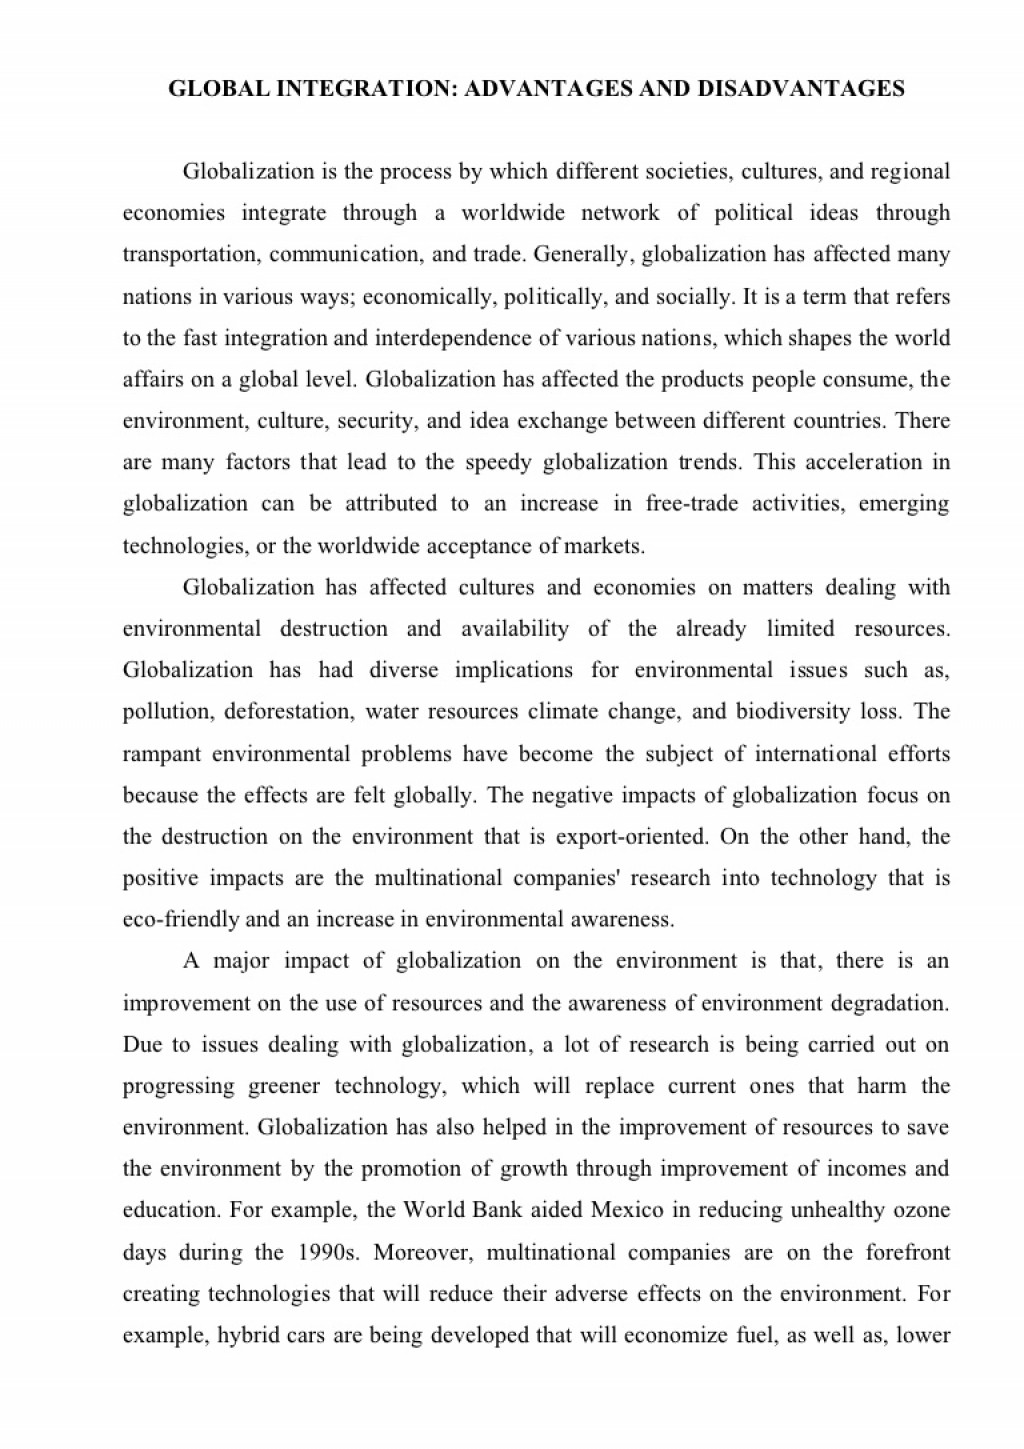 021 Essayglobalization Phpapp02 Thumbnail Essay Example Advantage And Disadvantage Of Shocking Science Advantages Disadvantages With Quotes In Kannada Tamil Pdf Large